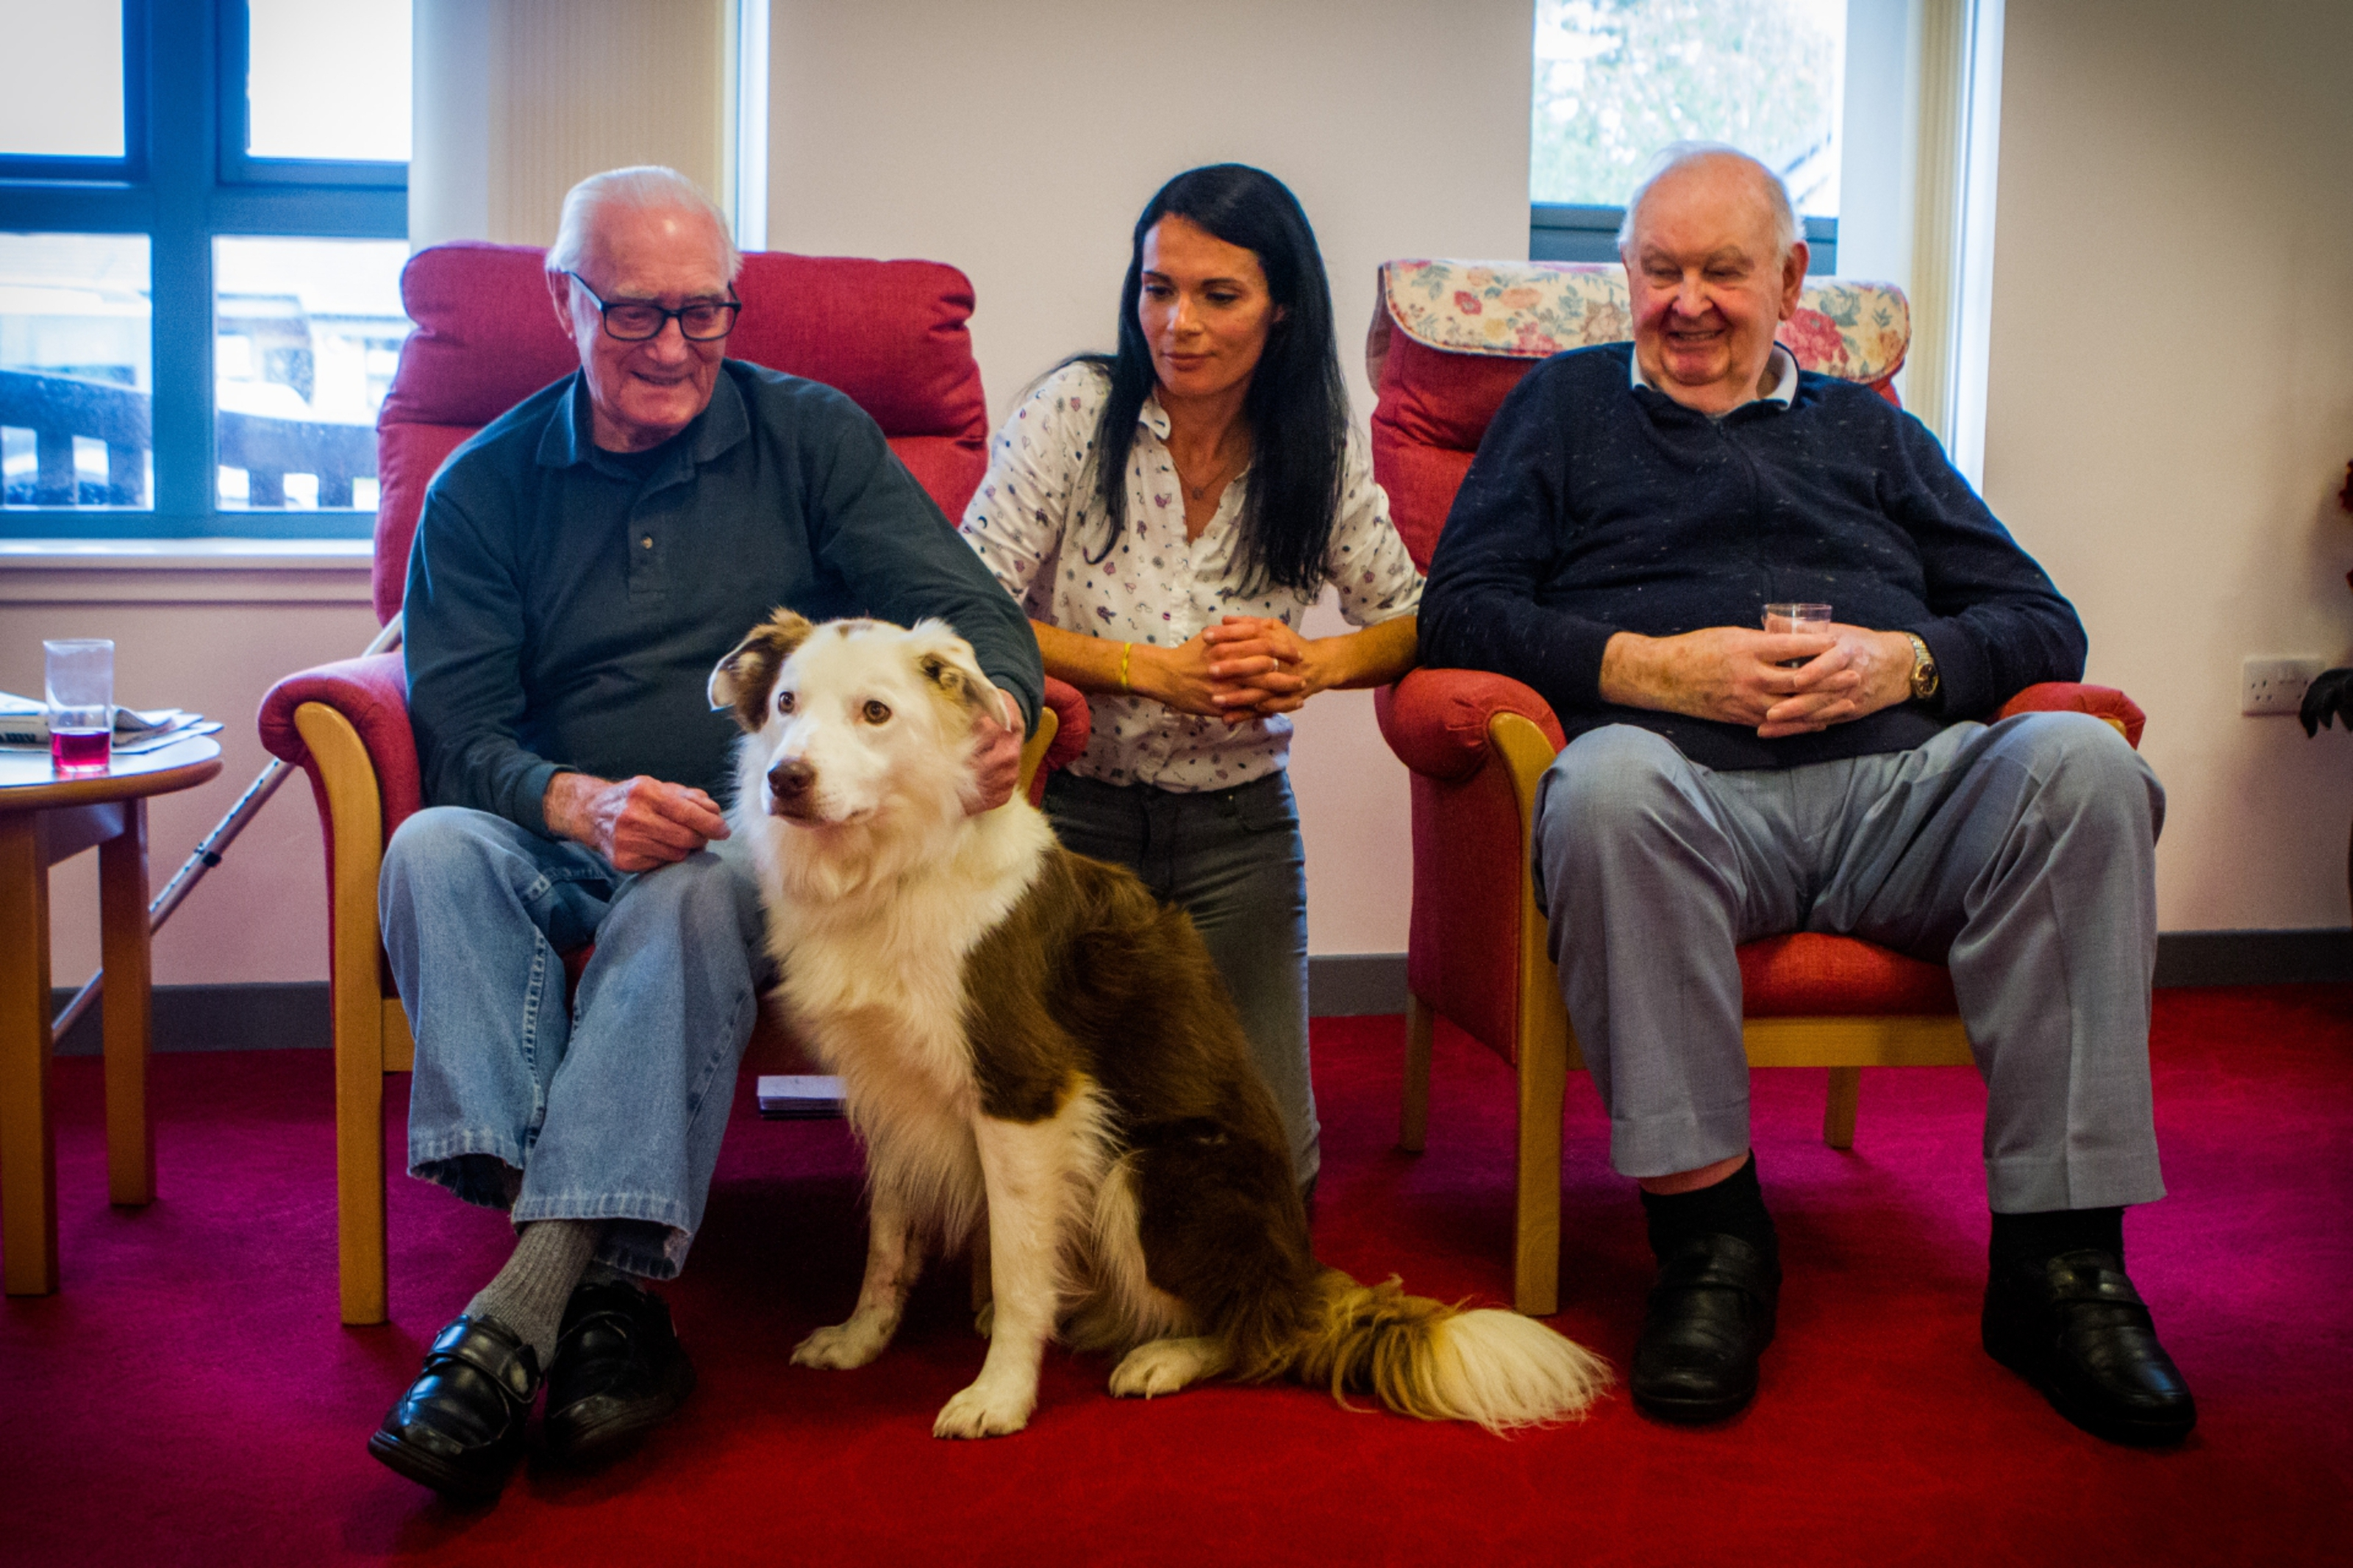 Therapets Cooper and Dora visit Kinloch Care Centre in Carnoustie and meet Bert Symmers, journalist Gayle Ritchie and Bill Braithwaite.